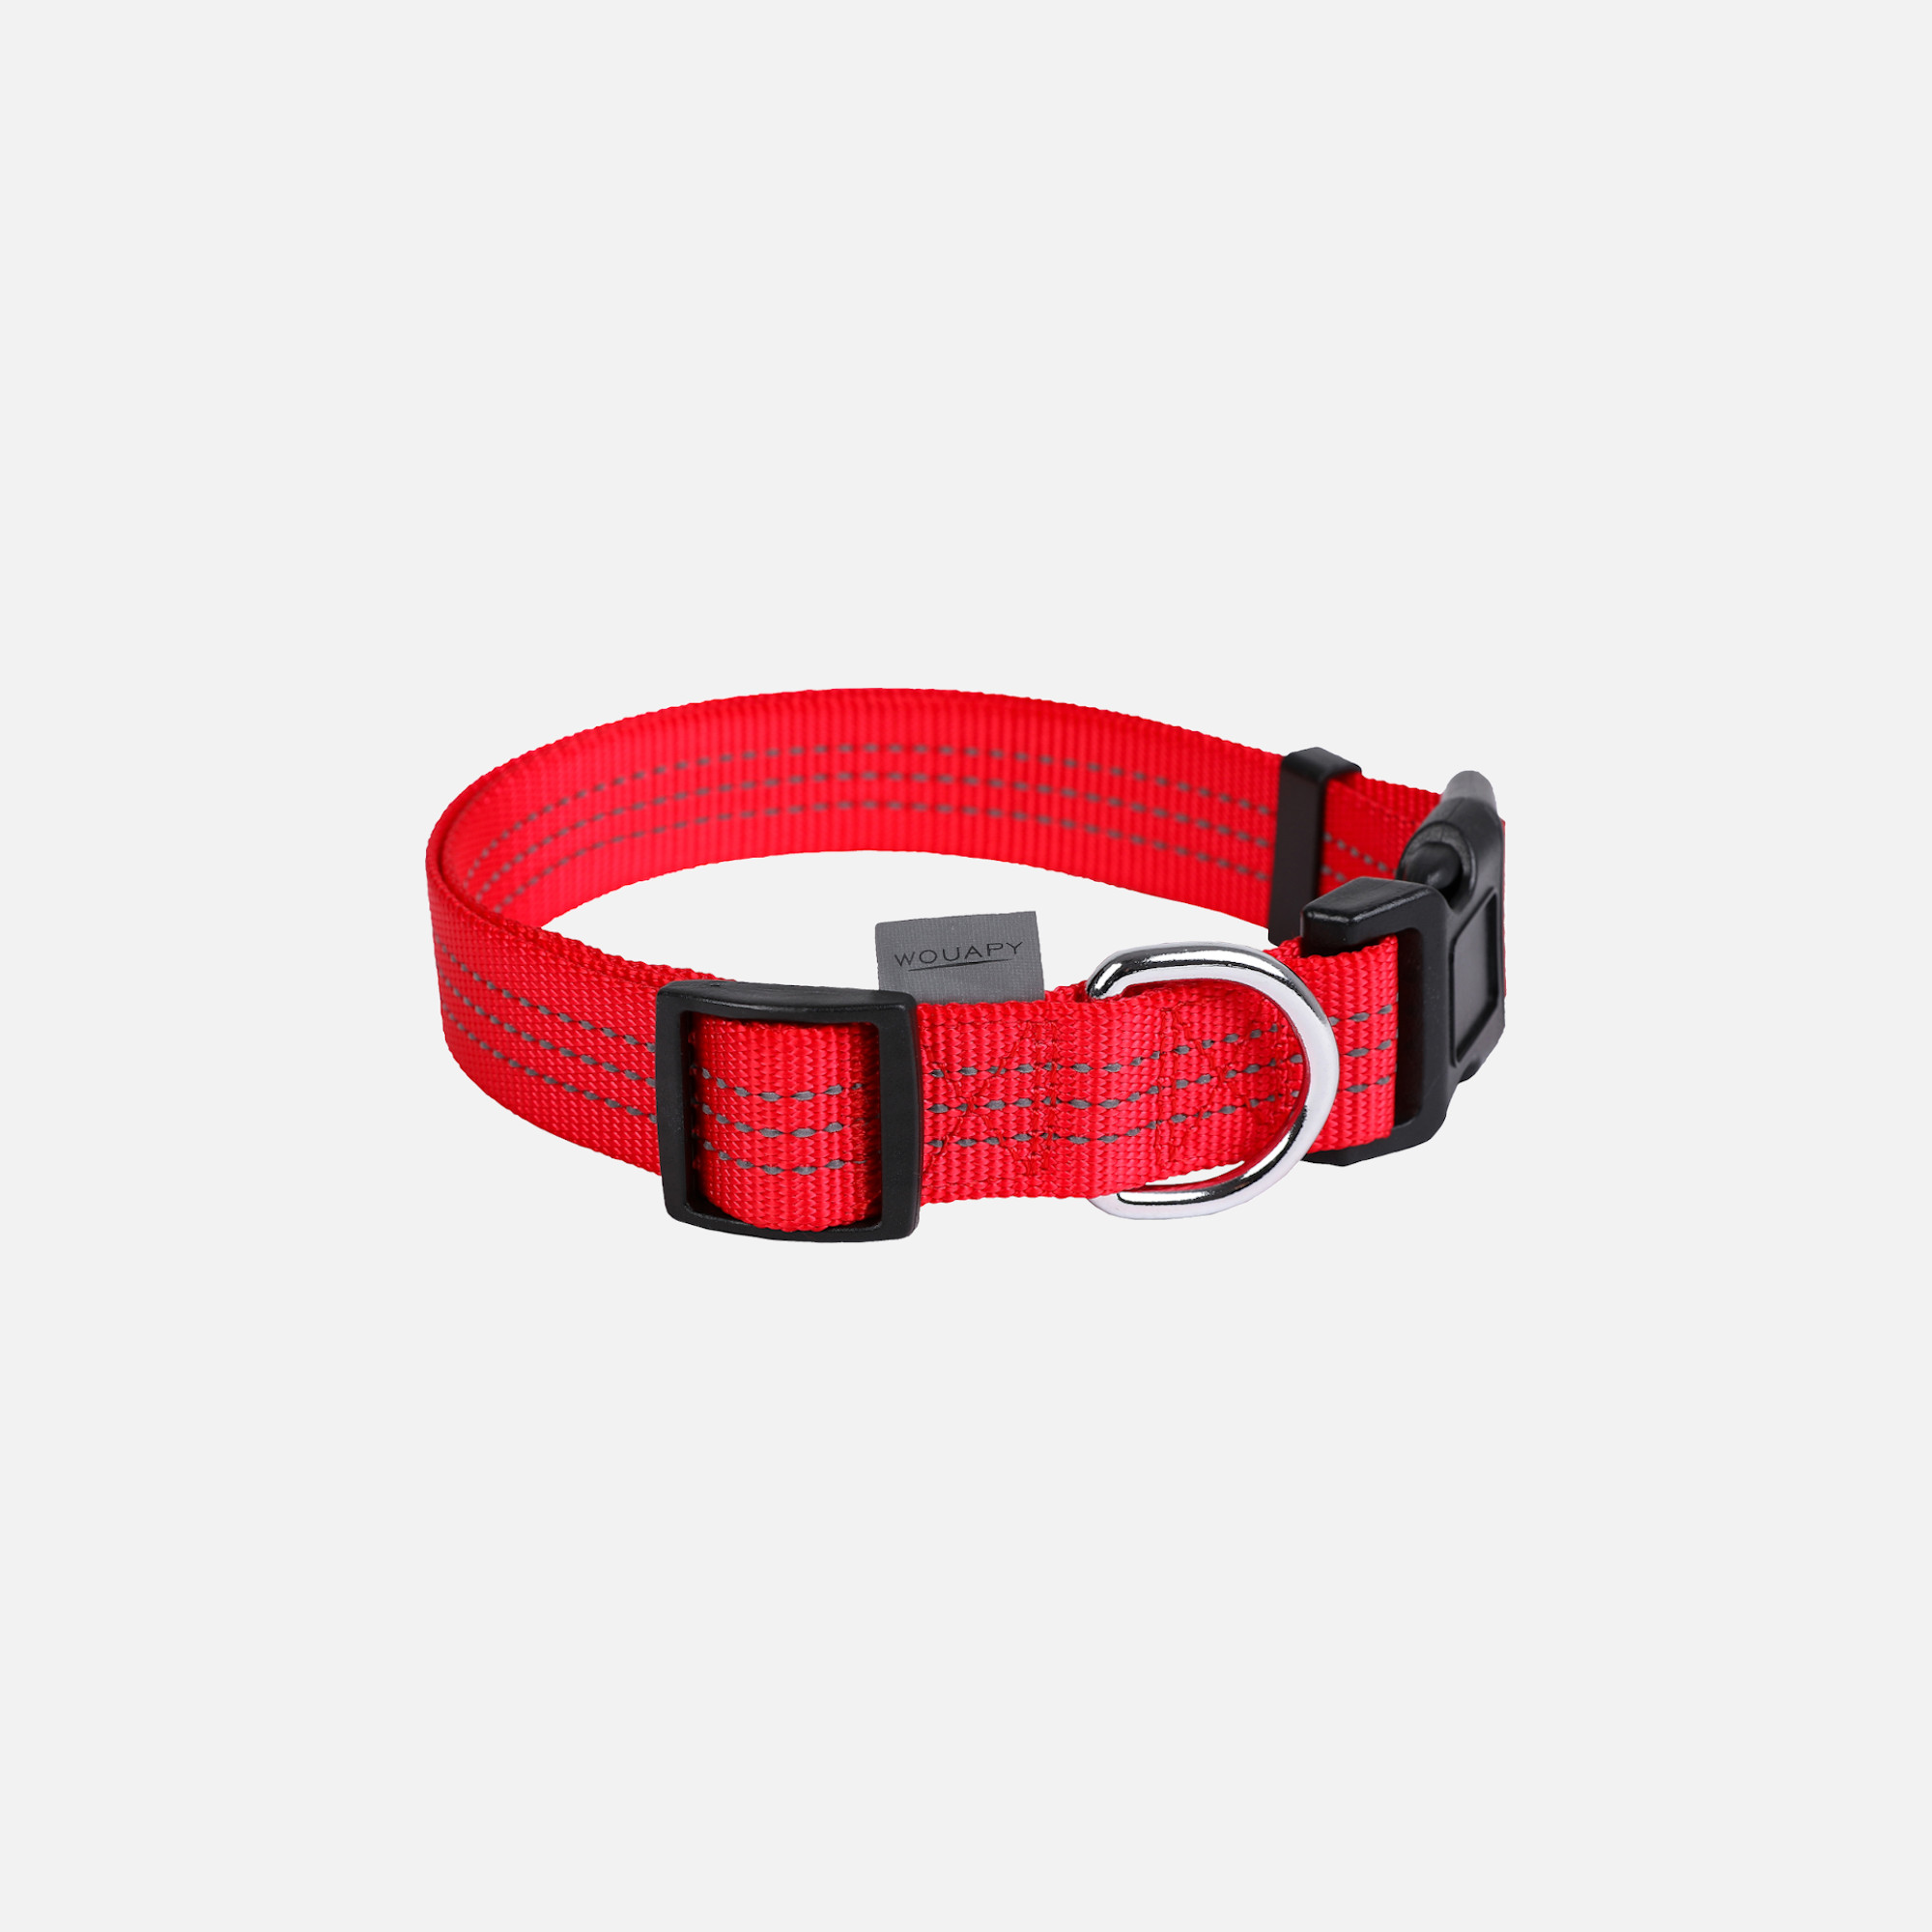 Collier protect rouge de wouapy